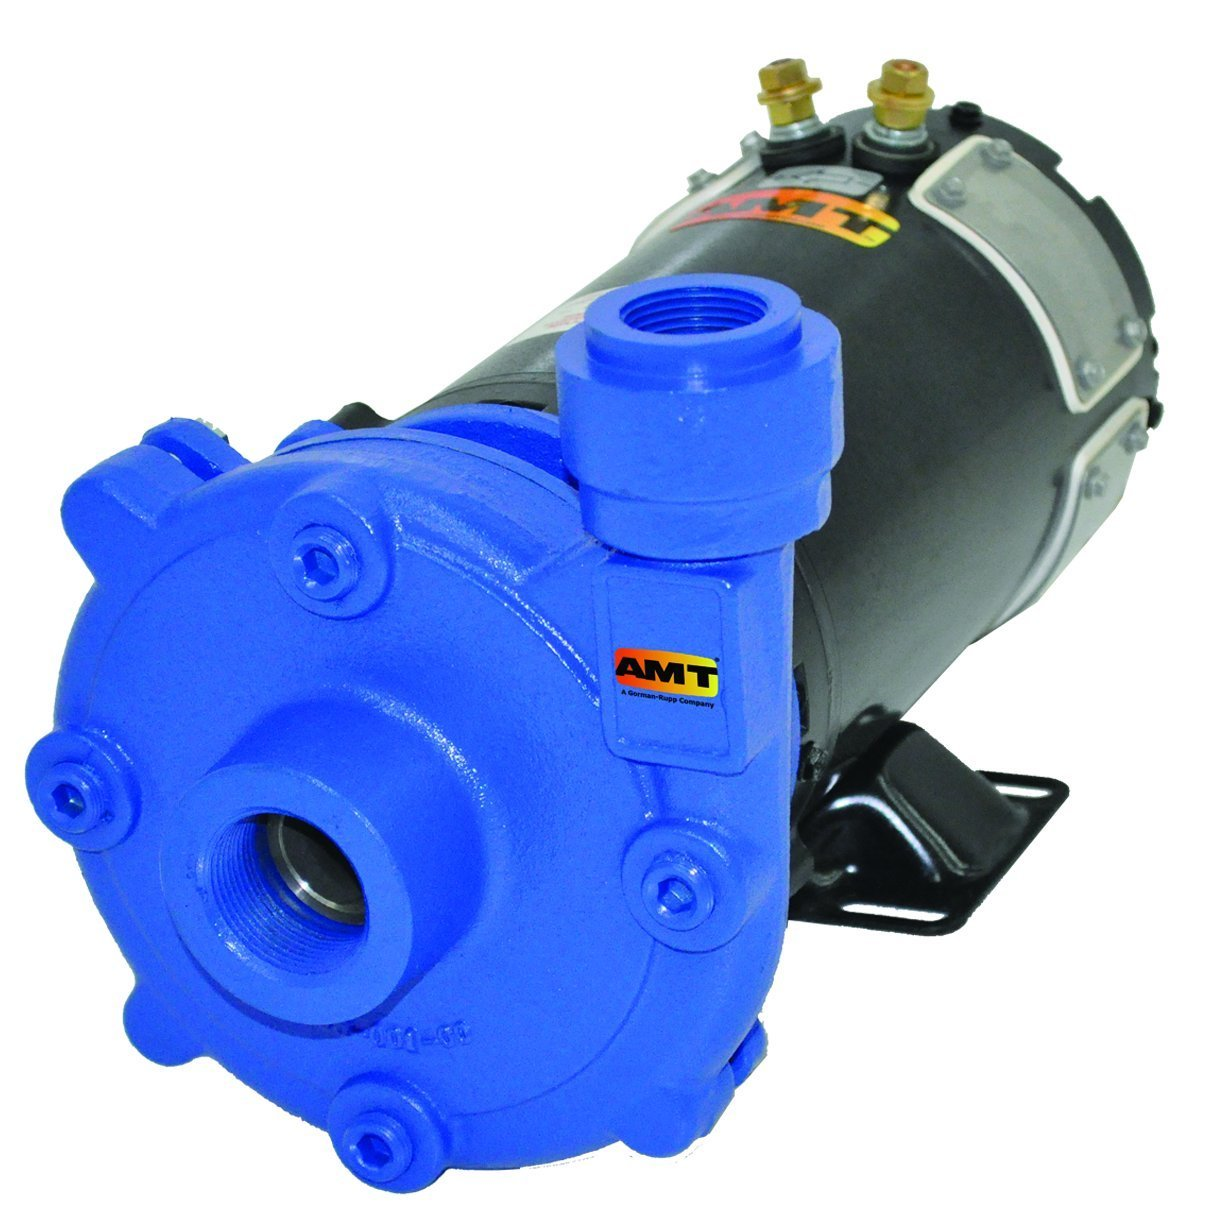 Amt High Head Straight Centrifugal Washdown Pump 1 25 X 1 56 Gpm 1 0 Hp 12 Volt Dc Cast Iron also Types Of Single Phase Induction Motors further Start Mechanism In Single Phase Induction Motor also How To Reverse The Drive On A 12hp Split Phase 240v Motor furthermore Motor Monofasico Con 2 Capacitores. on centrifugal start switch